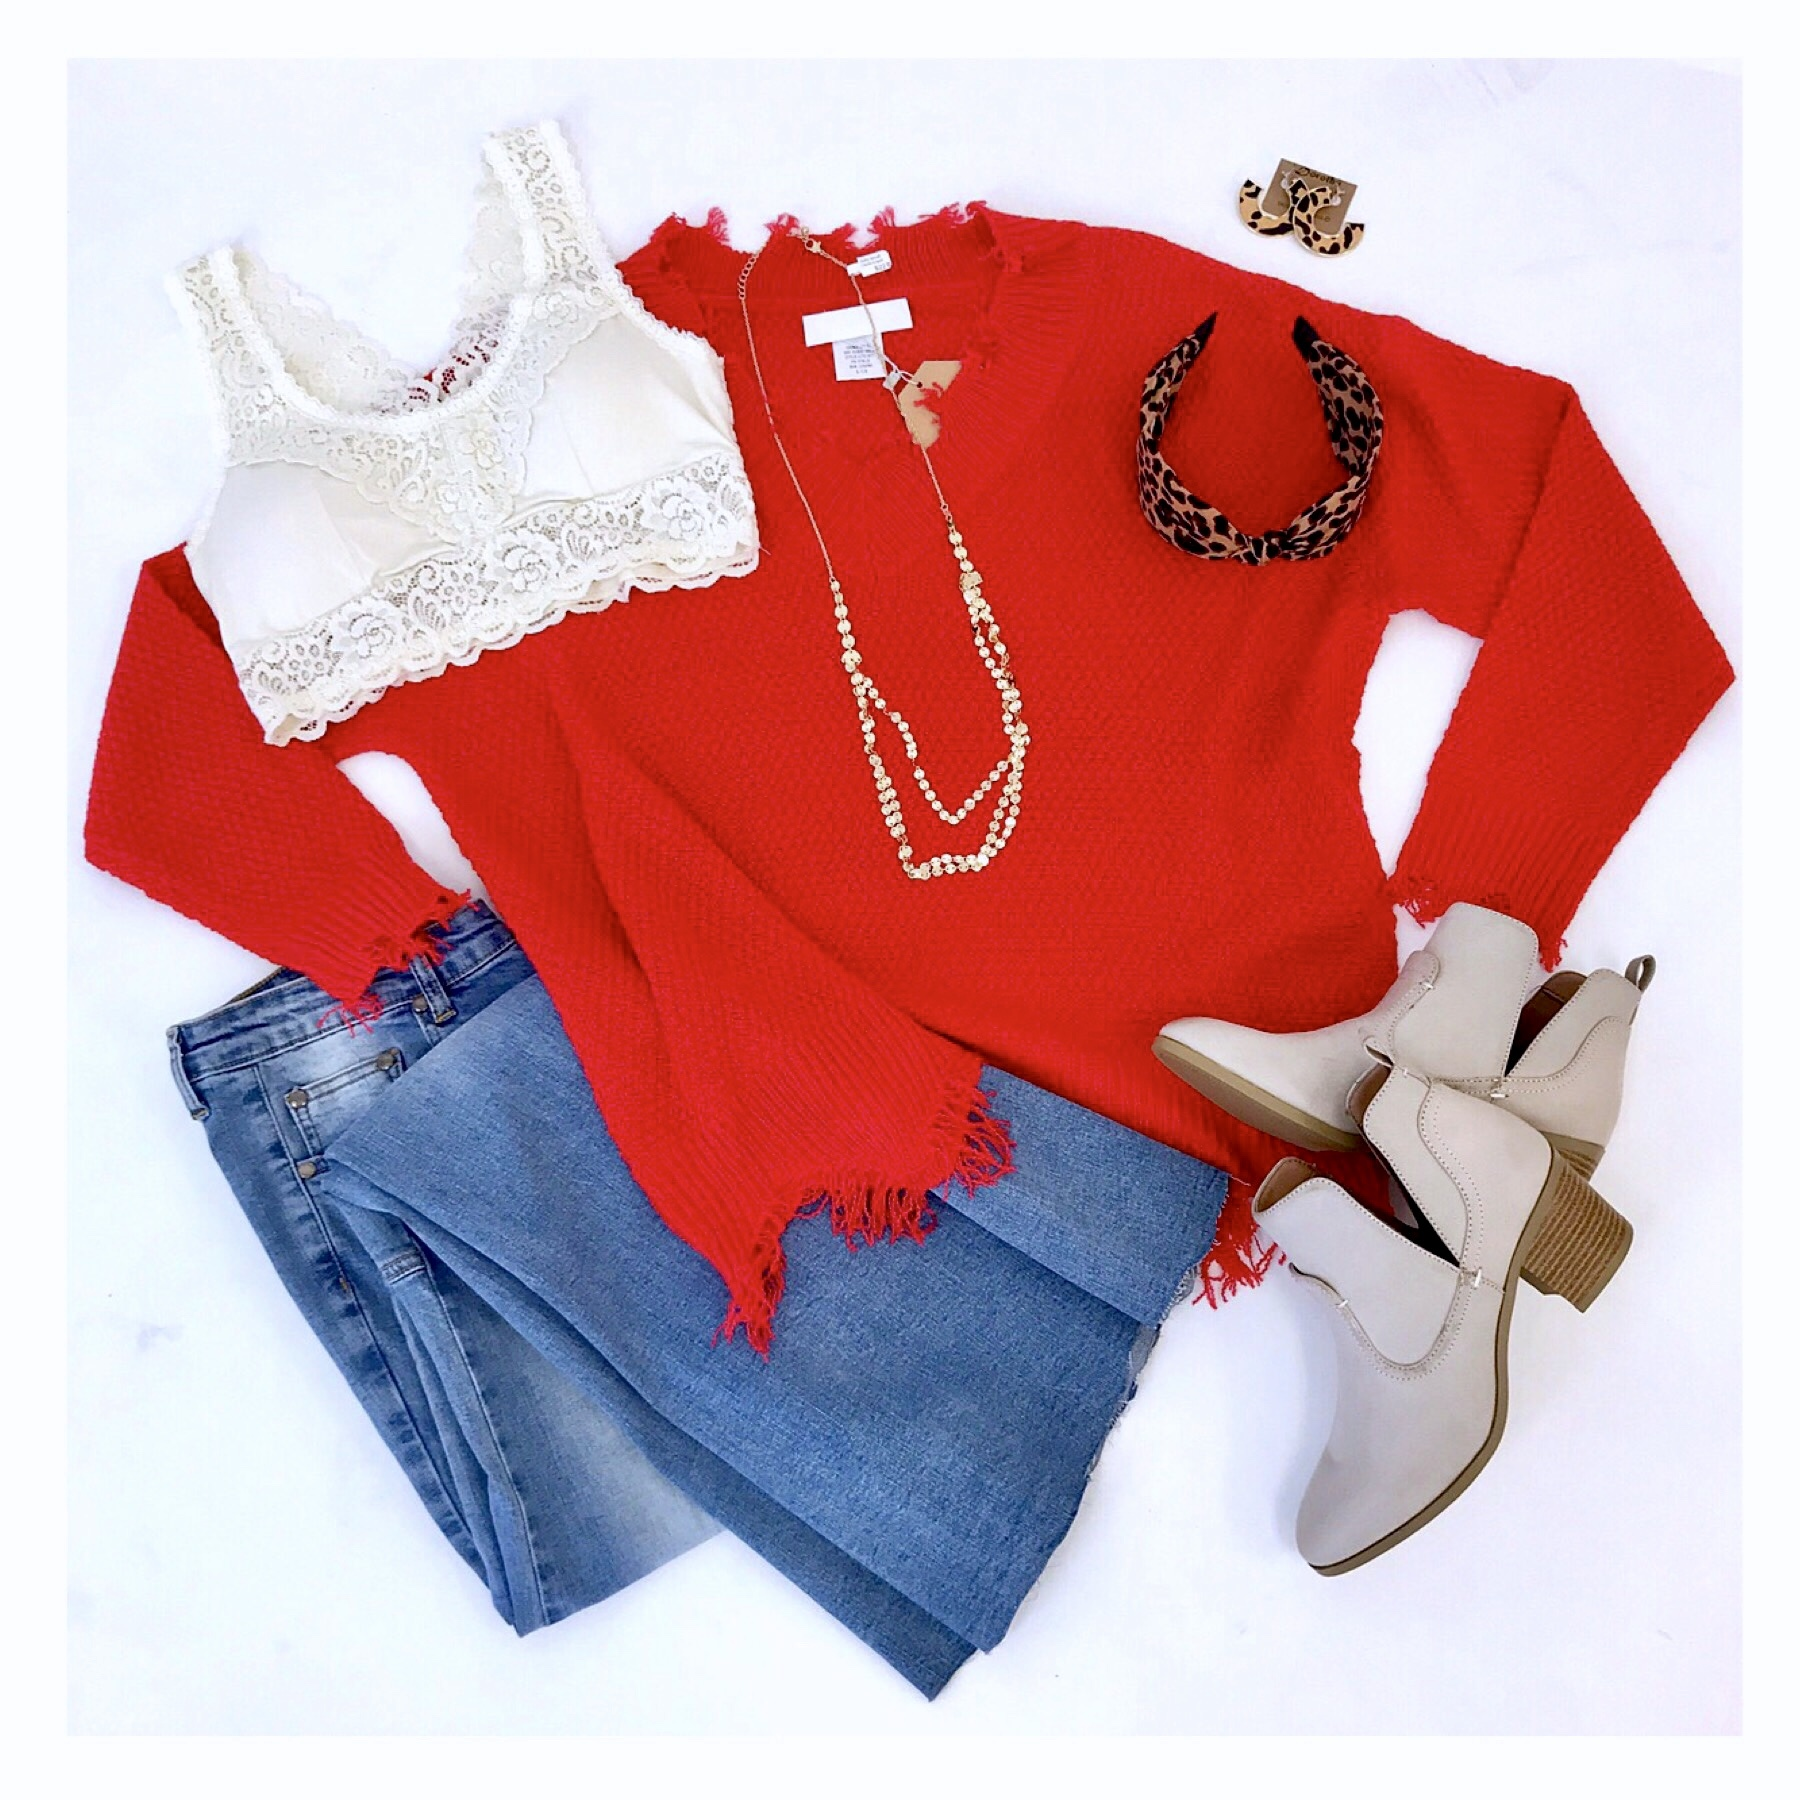 Bright Red Distressed V-Neck Sweater